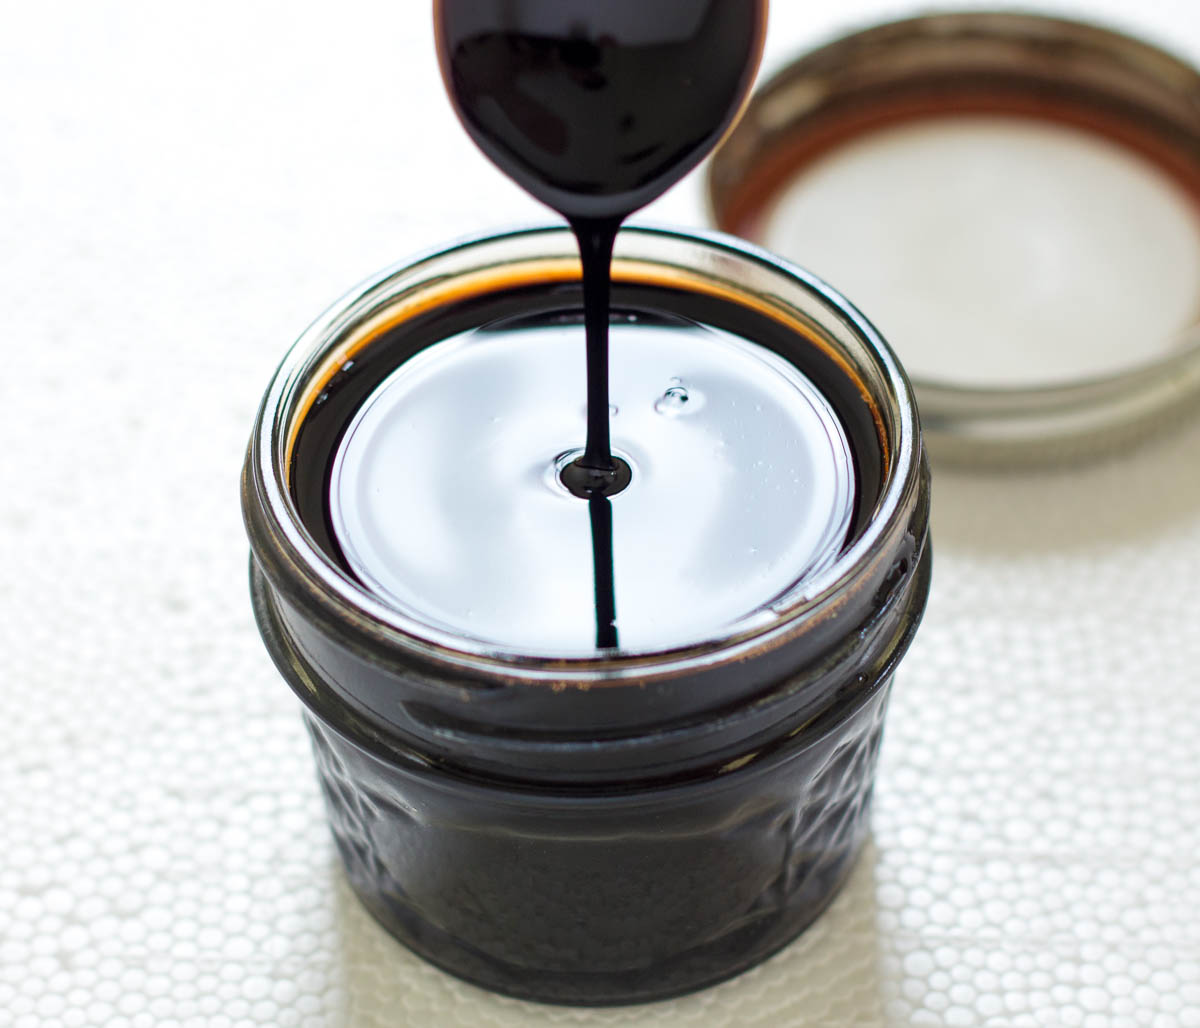 Spoon in a jar of balsamic reduction sauce